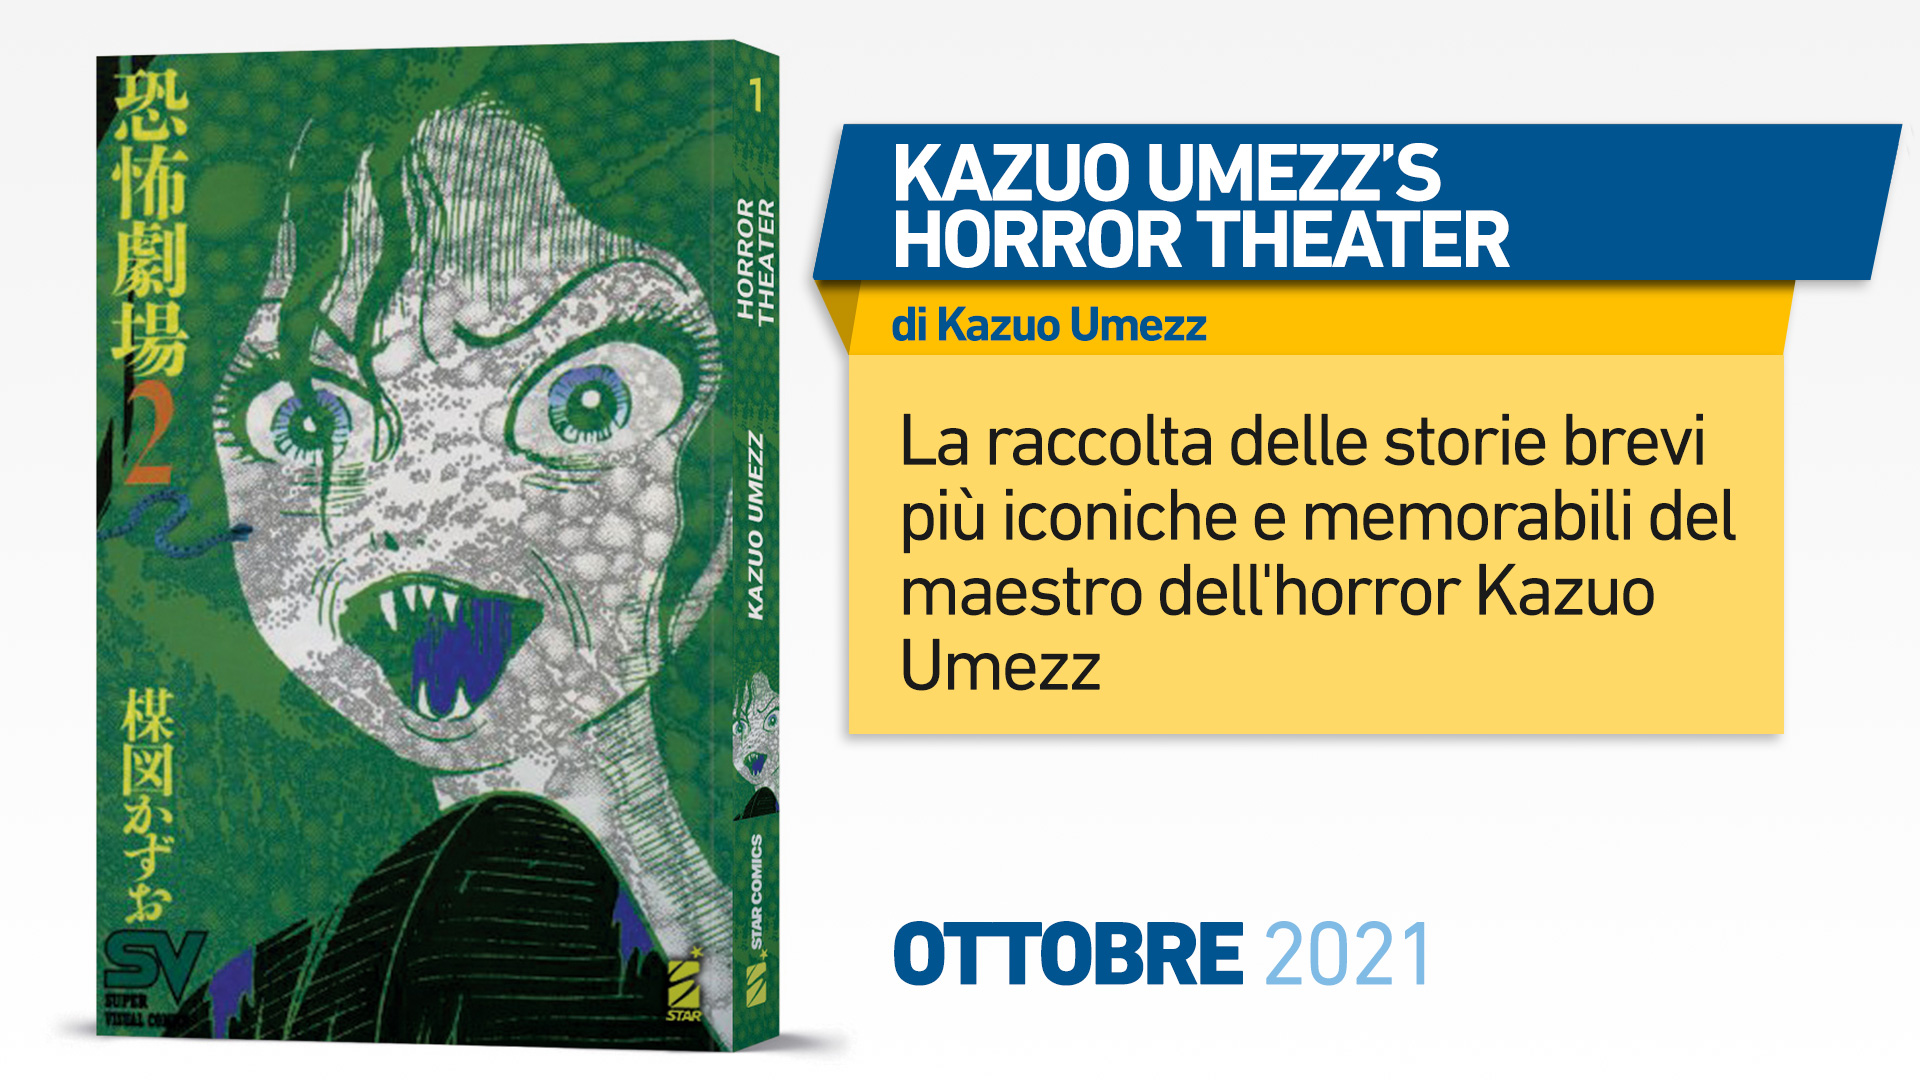 KAZUO UMEZZ'S HORROR THEATER